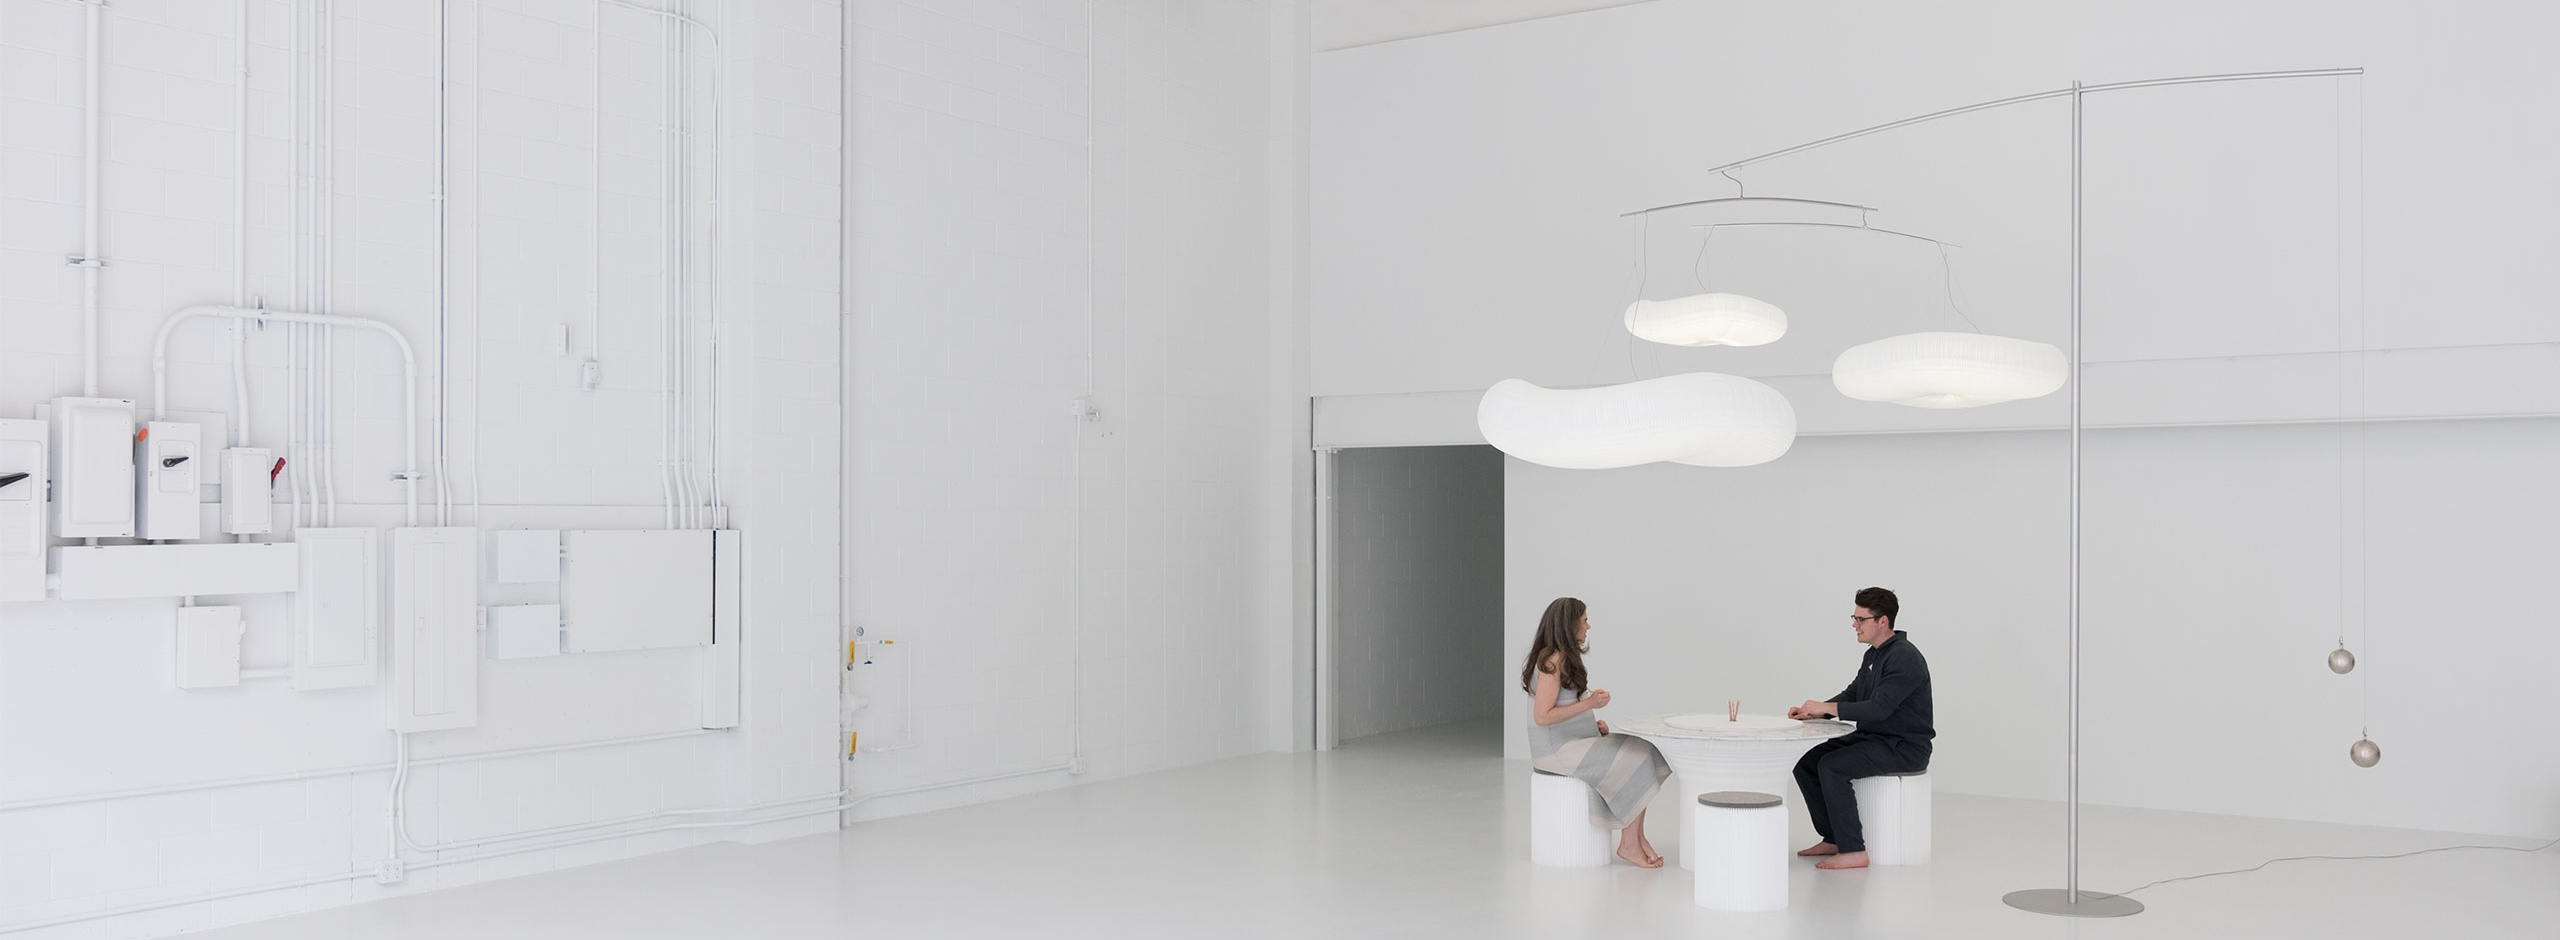 folding paper furniture under paper cloud lamp designed by Stephanie Forsythe and Todd MacAllen of molo.